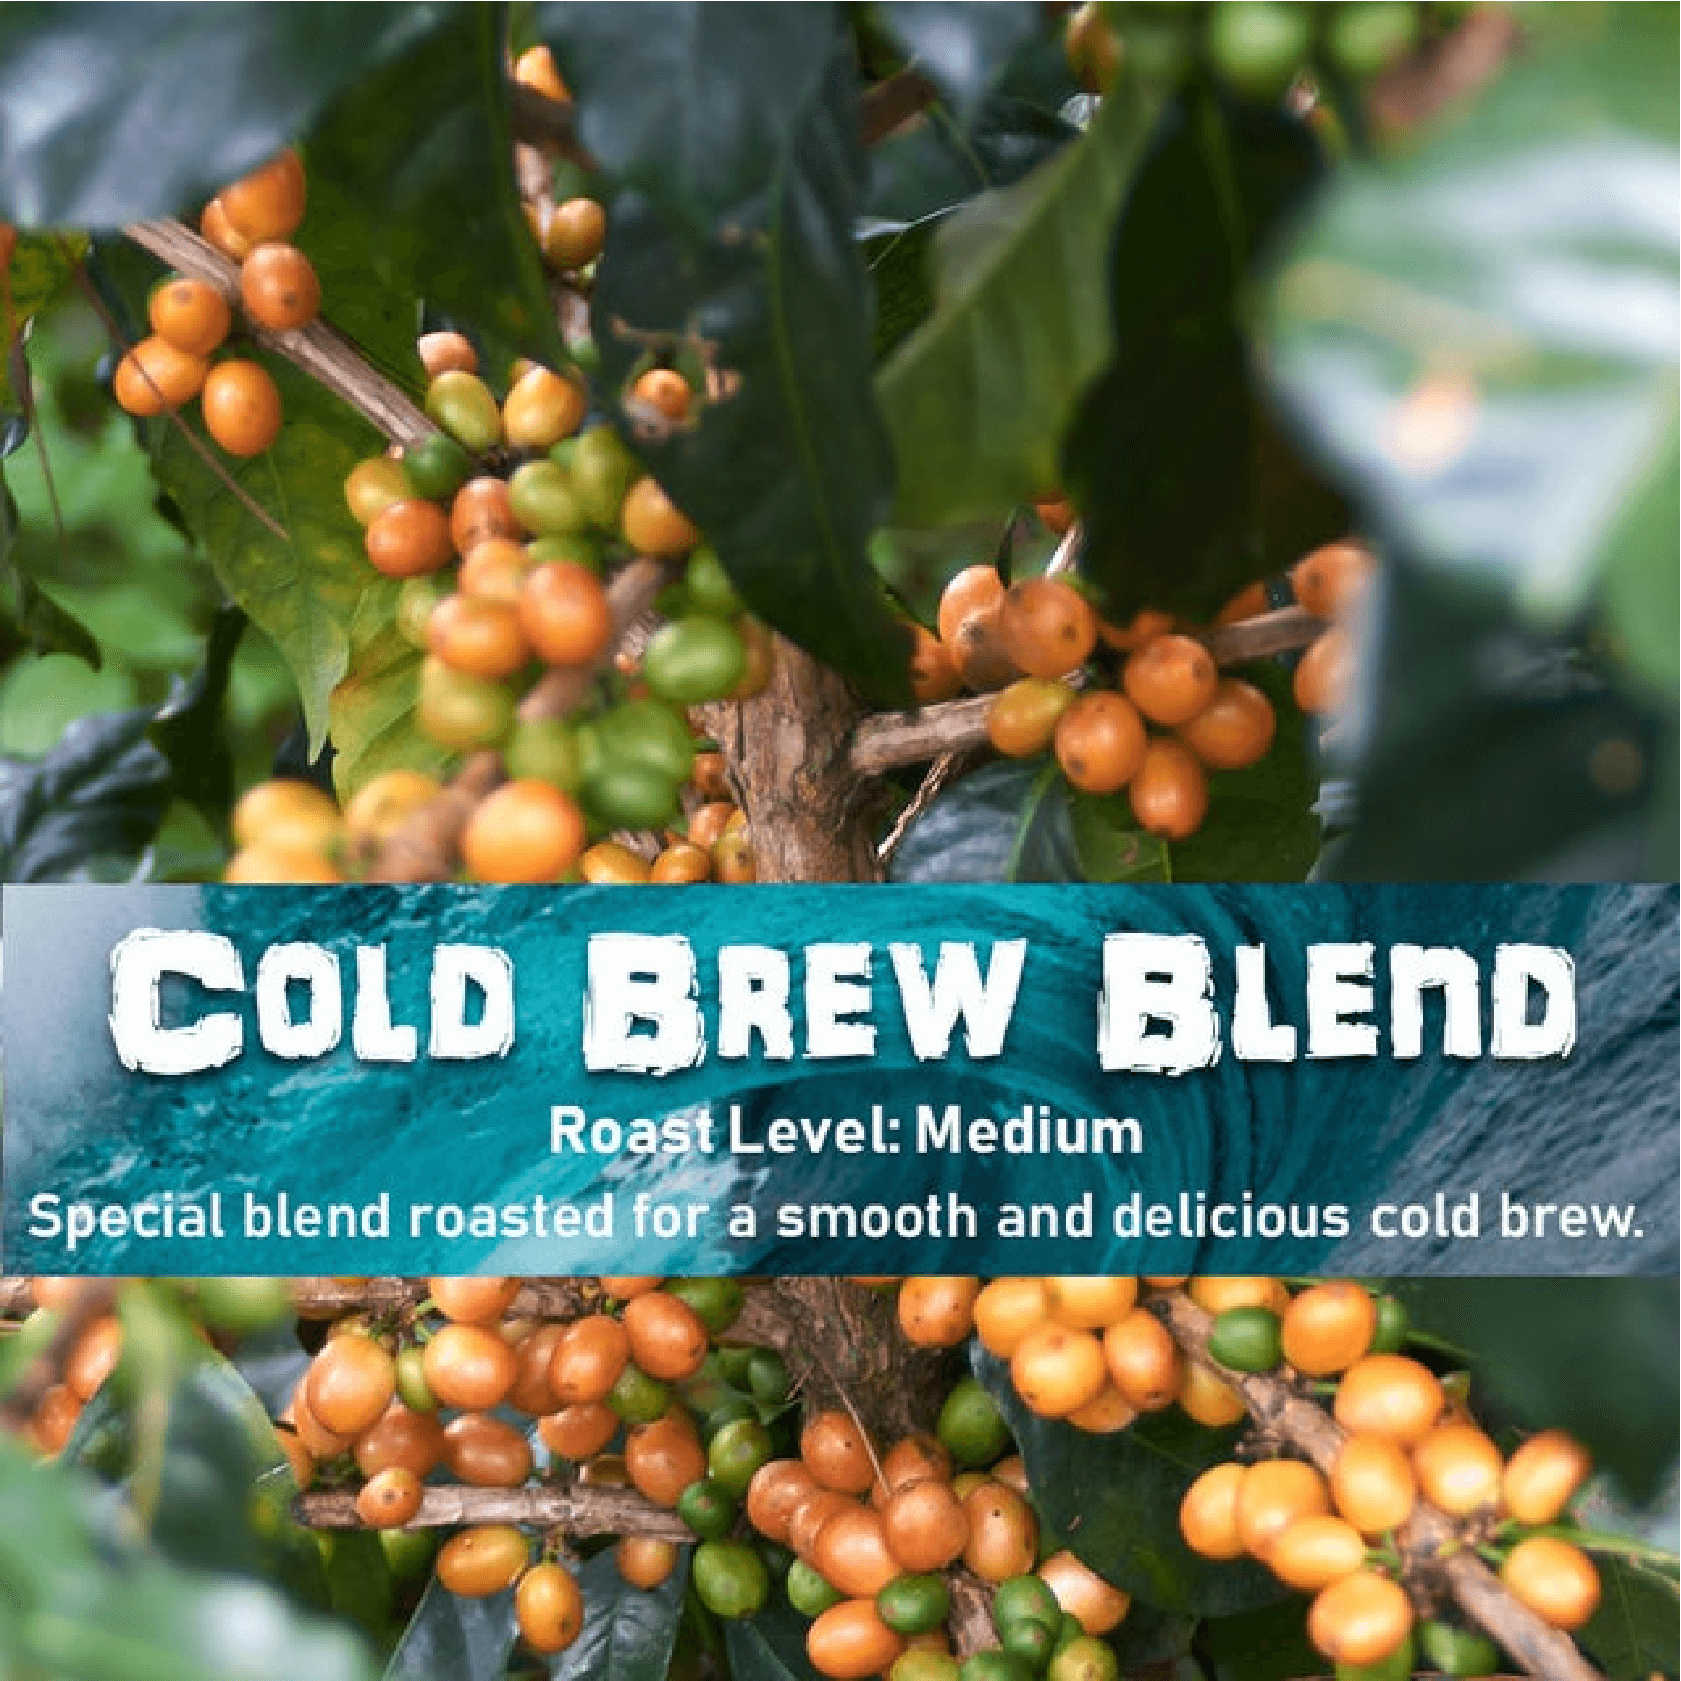 Cold Brew Blend from Malone Specialty Coffee